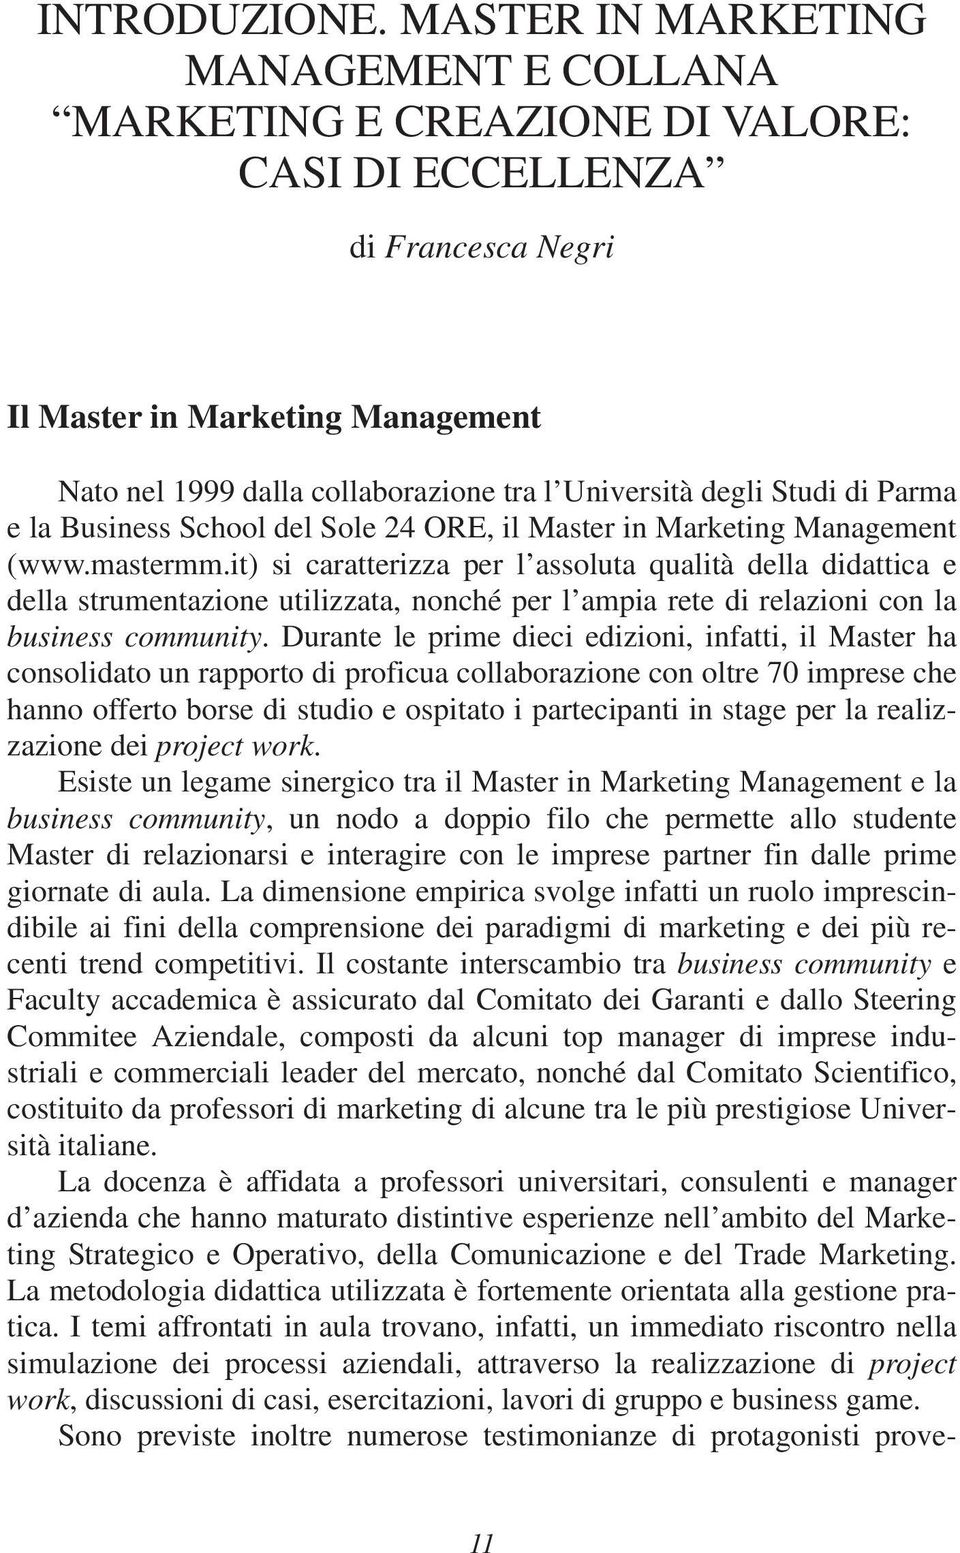 degli Studi di Parma e la Business School del Sole 24 ORE, il Master in Marketing Management (www.mastermm.